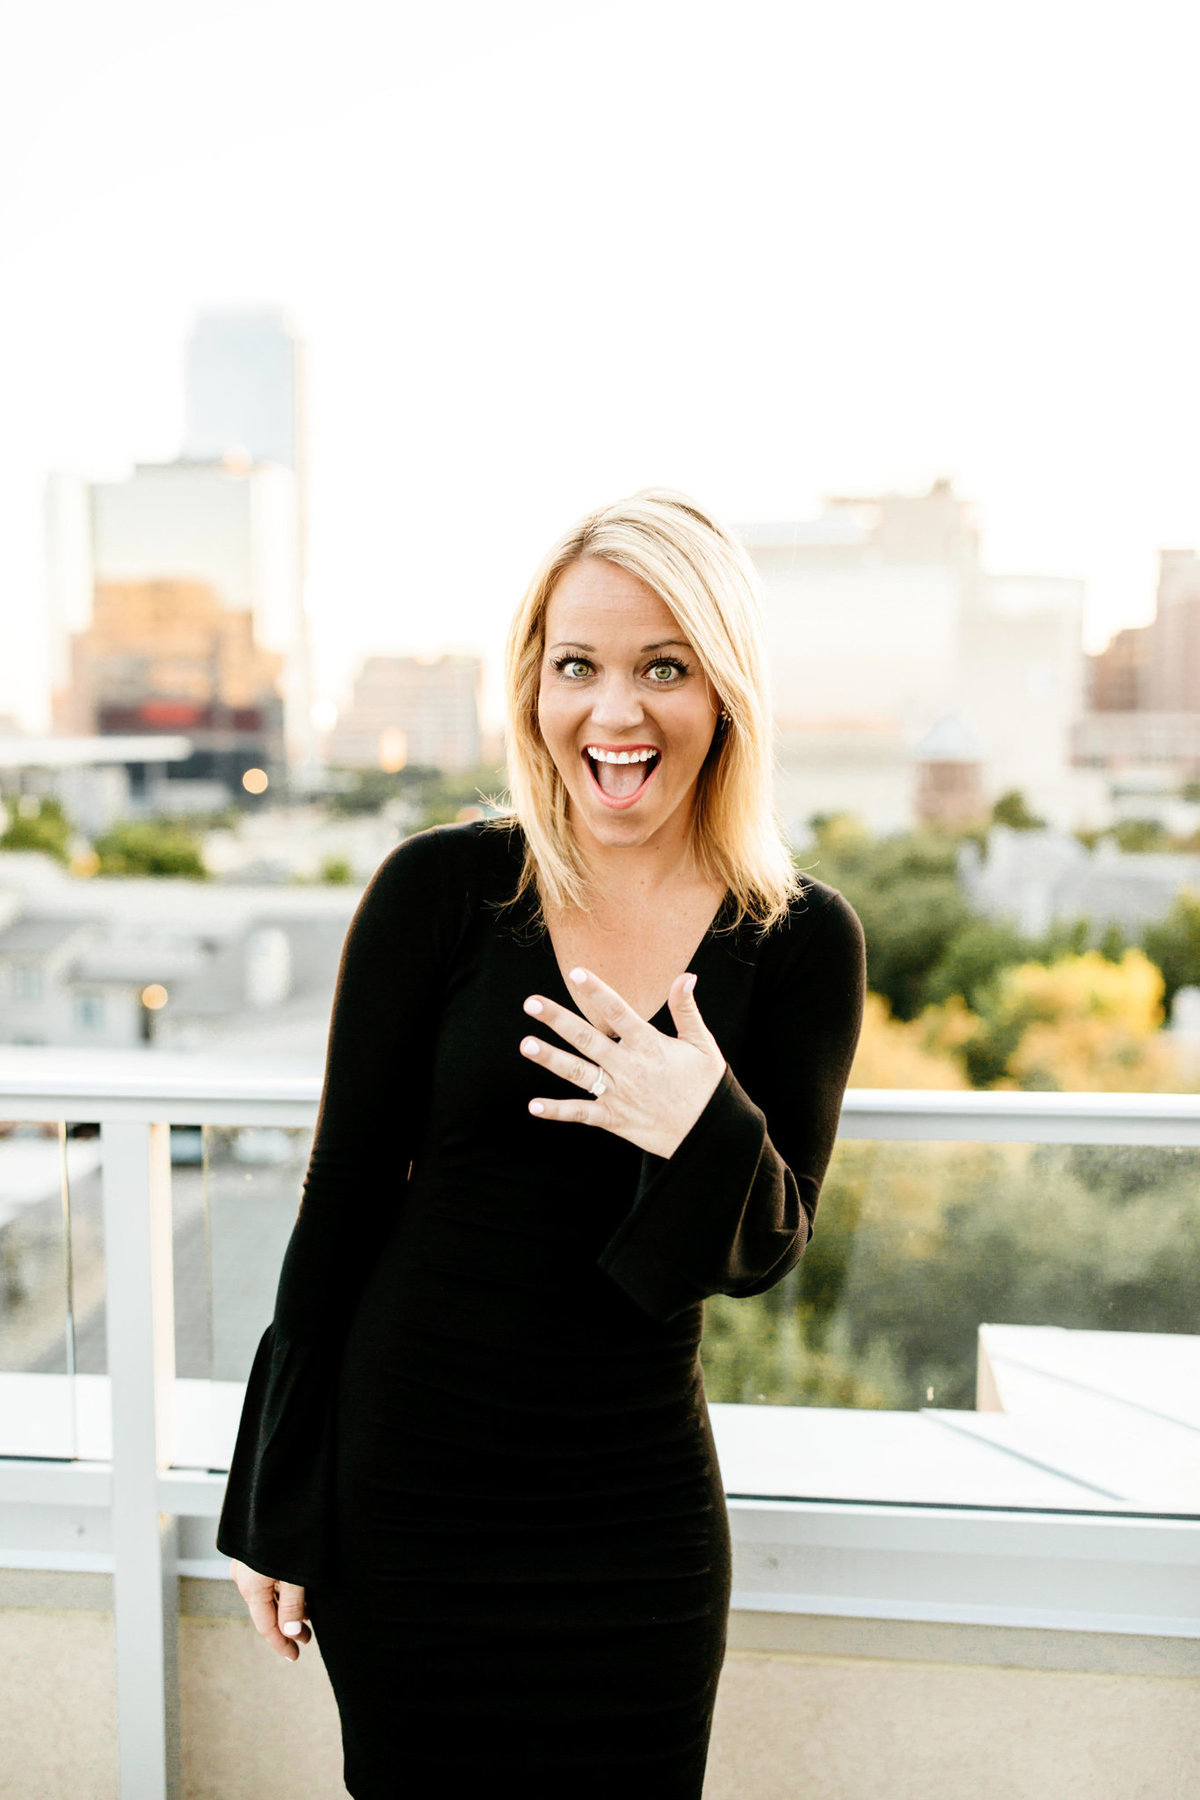 Eric & Megan - Downtown Dallas Rooftop Proposal & Engagement Session-103